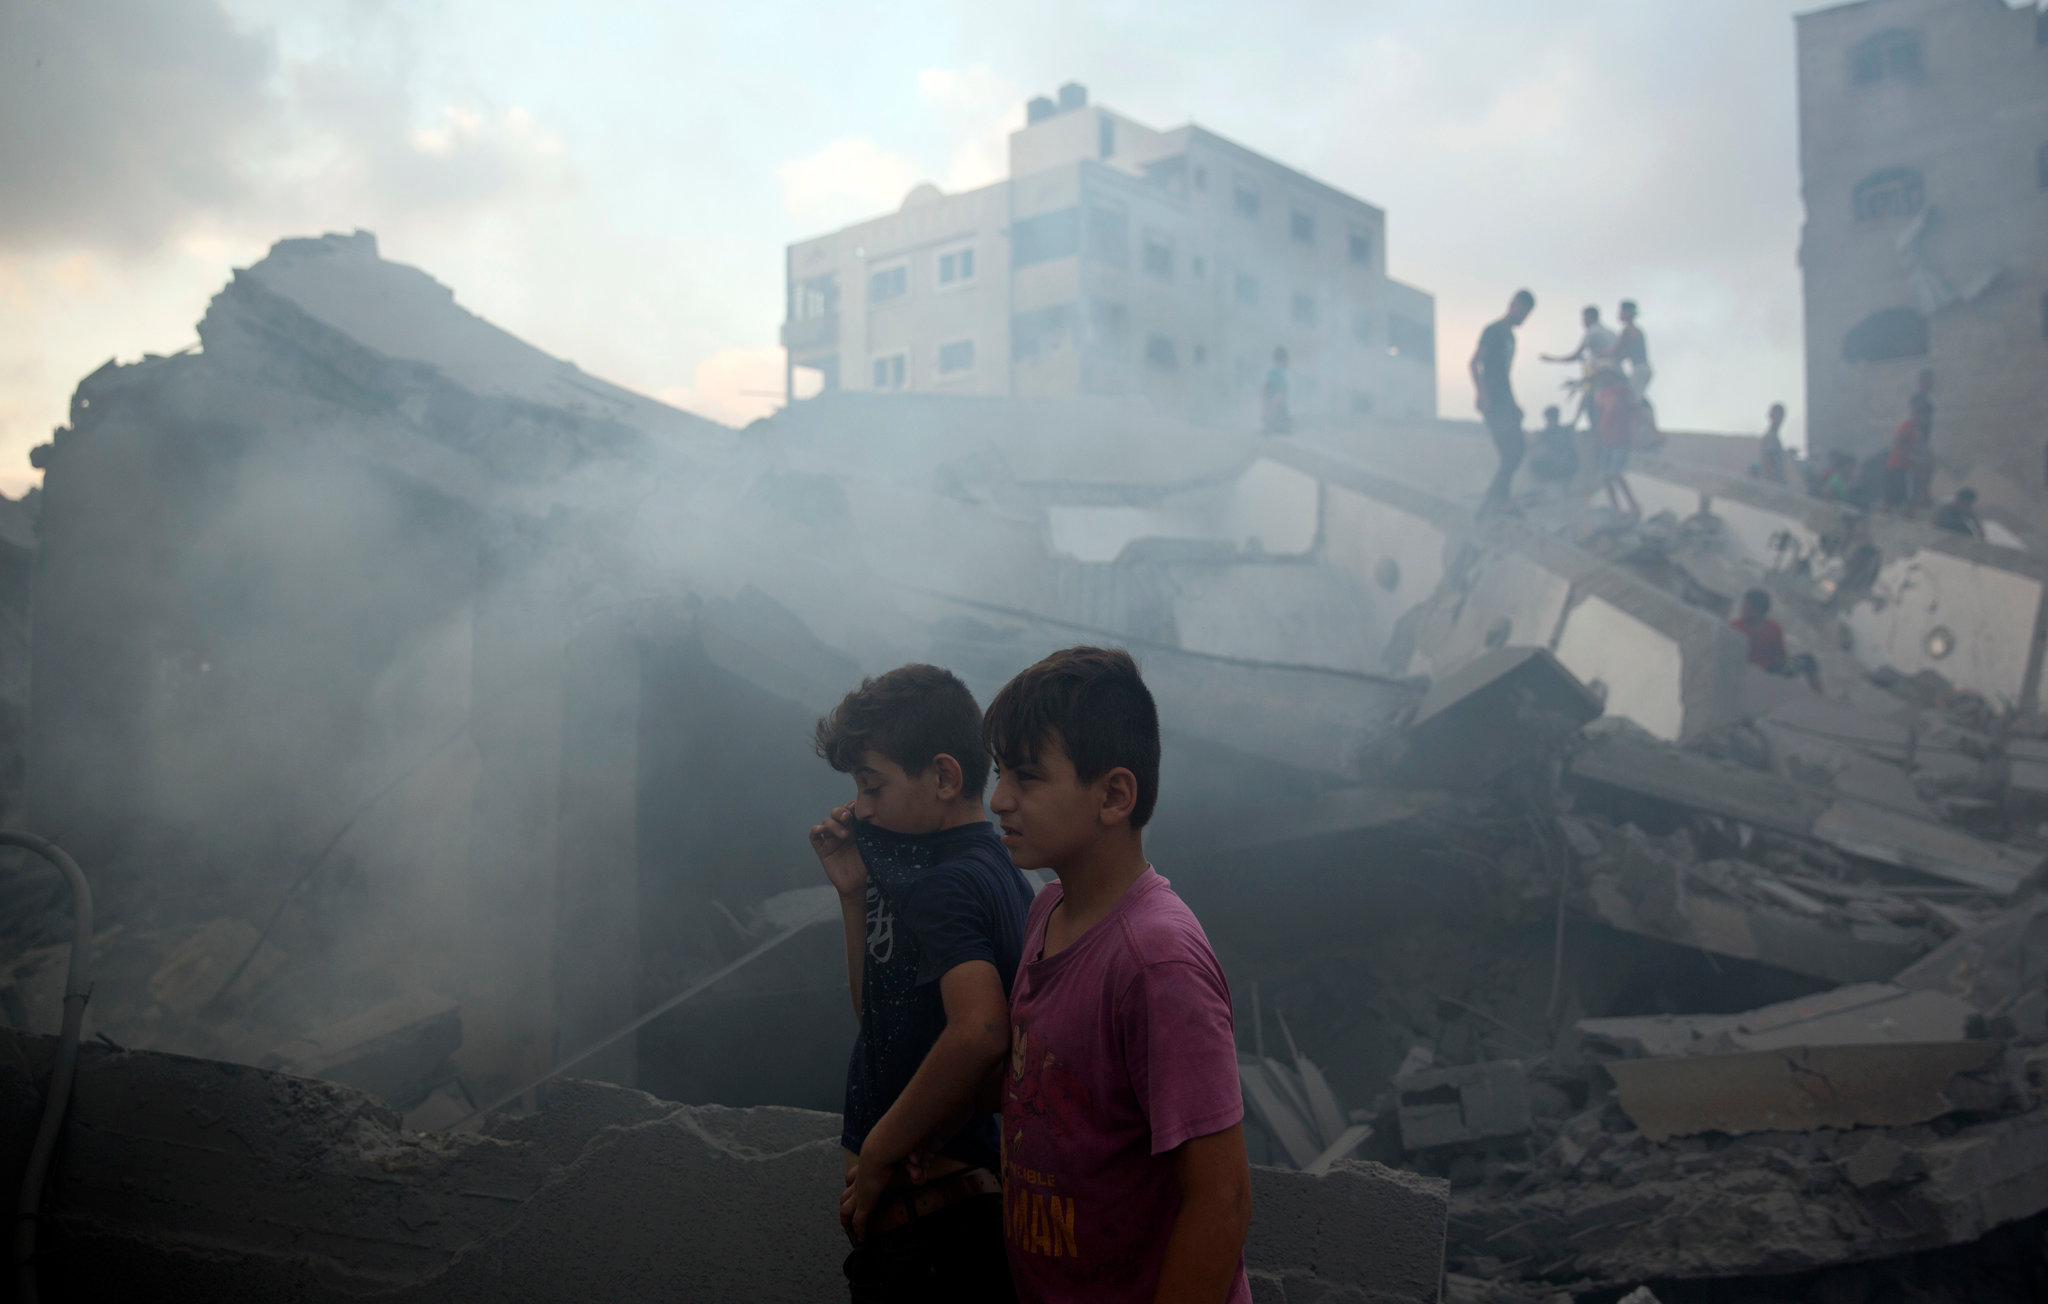 The Said al-Mis'hal cultural center in Gaza was hit by an Israeli airstrike in August. (CreditKhalil Hamra/Associated Press)